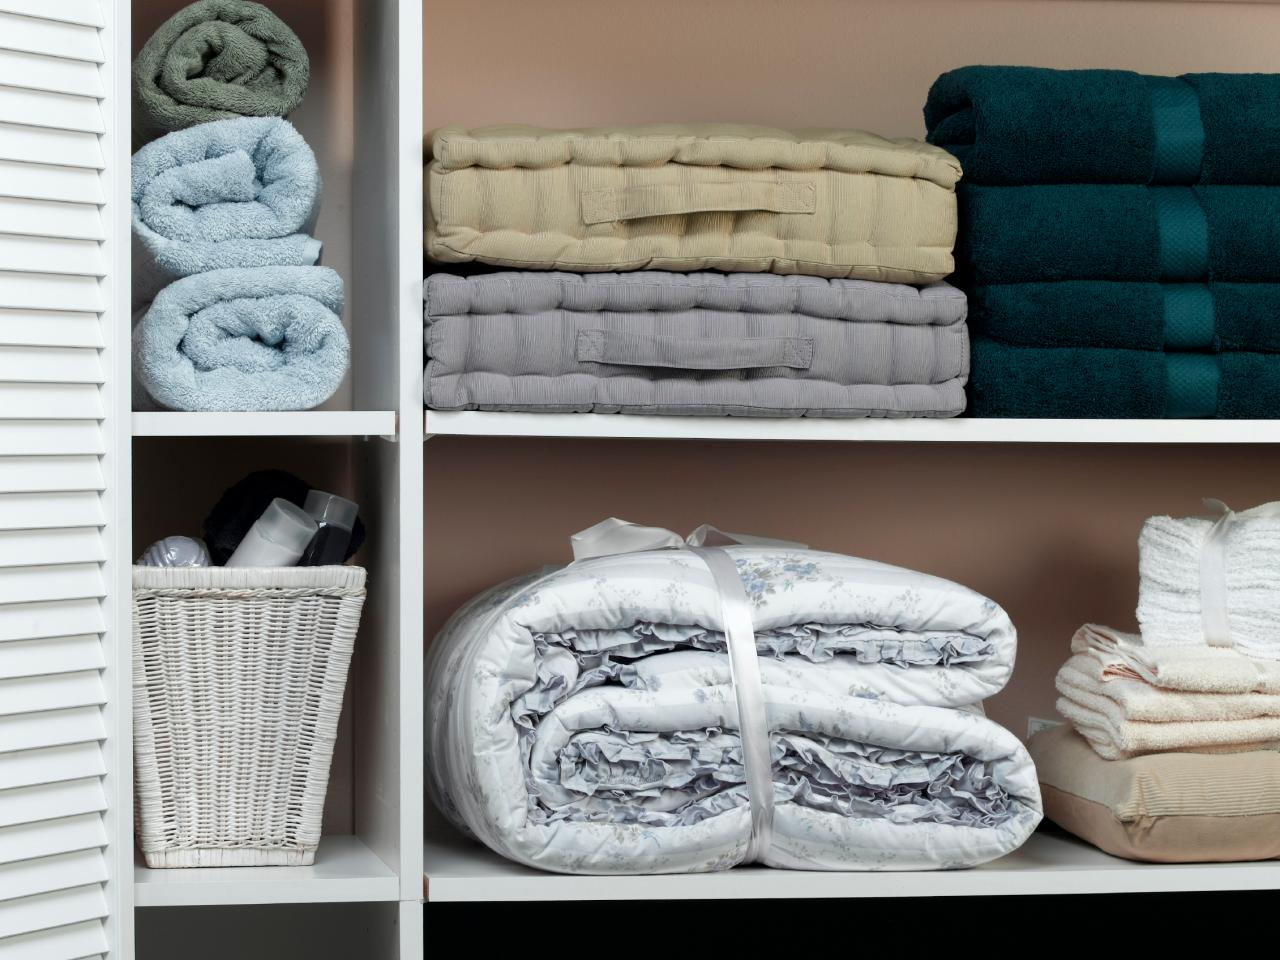 opt for adjustable shelves - Linen Closet